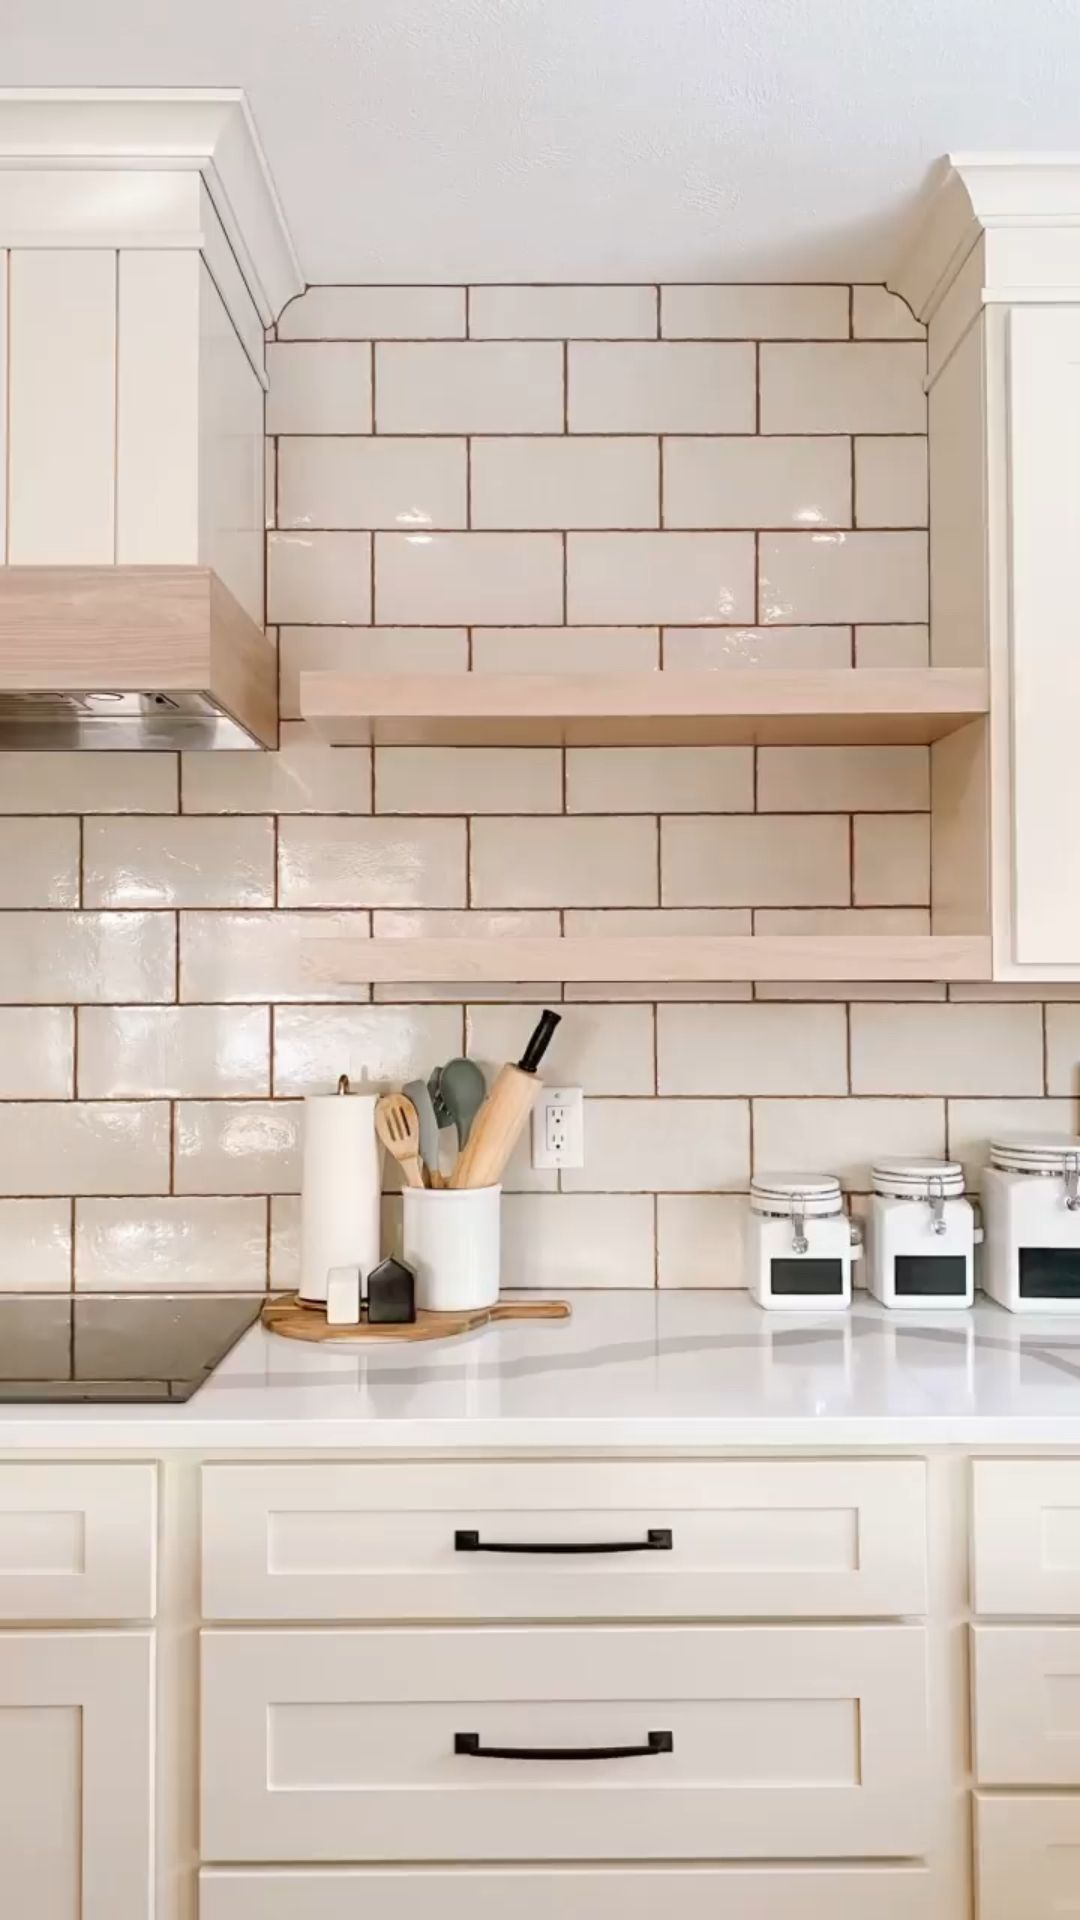 15 Pros & Cons of Floating Kitchen Shelves vs. Cabinets in 2021